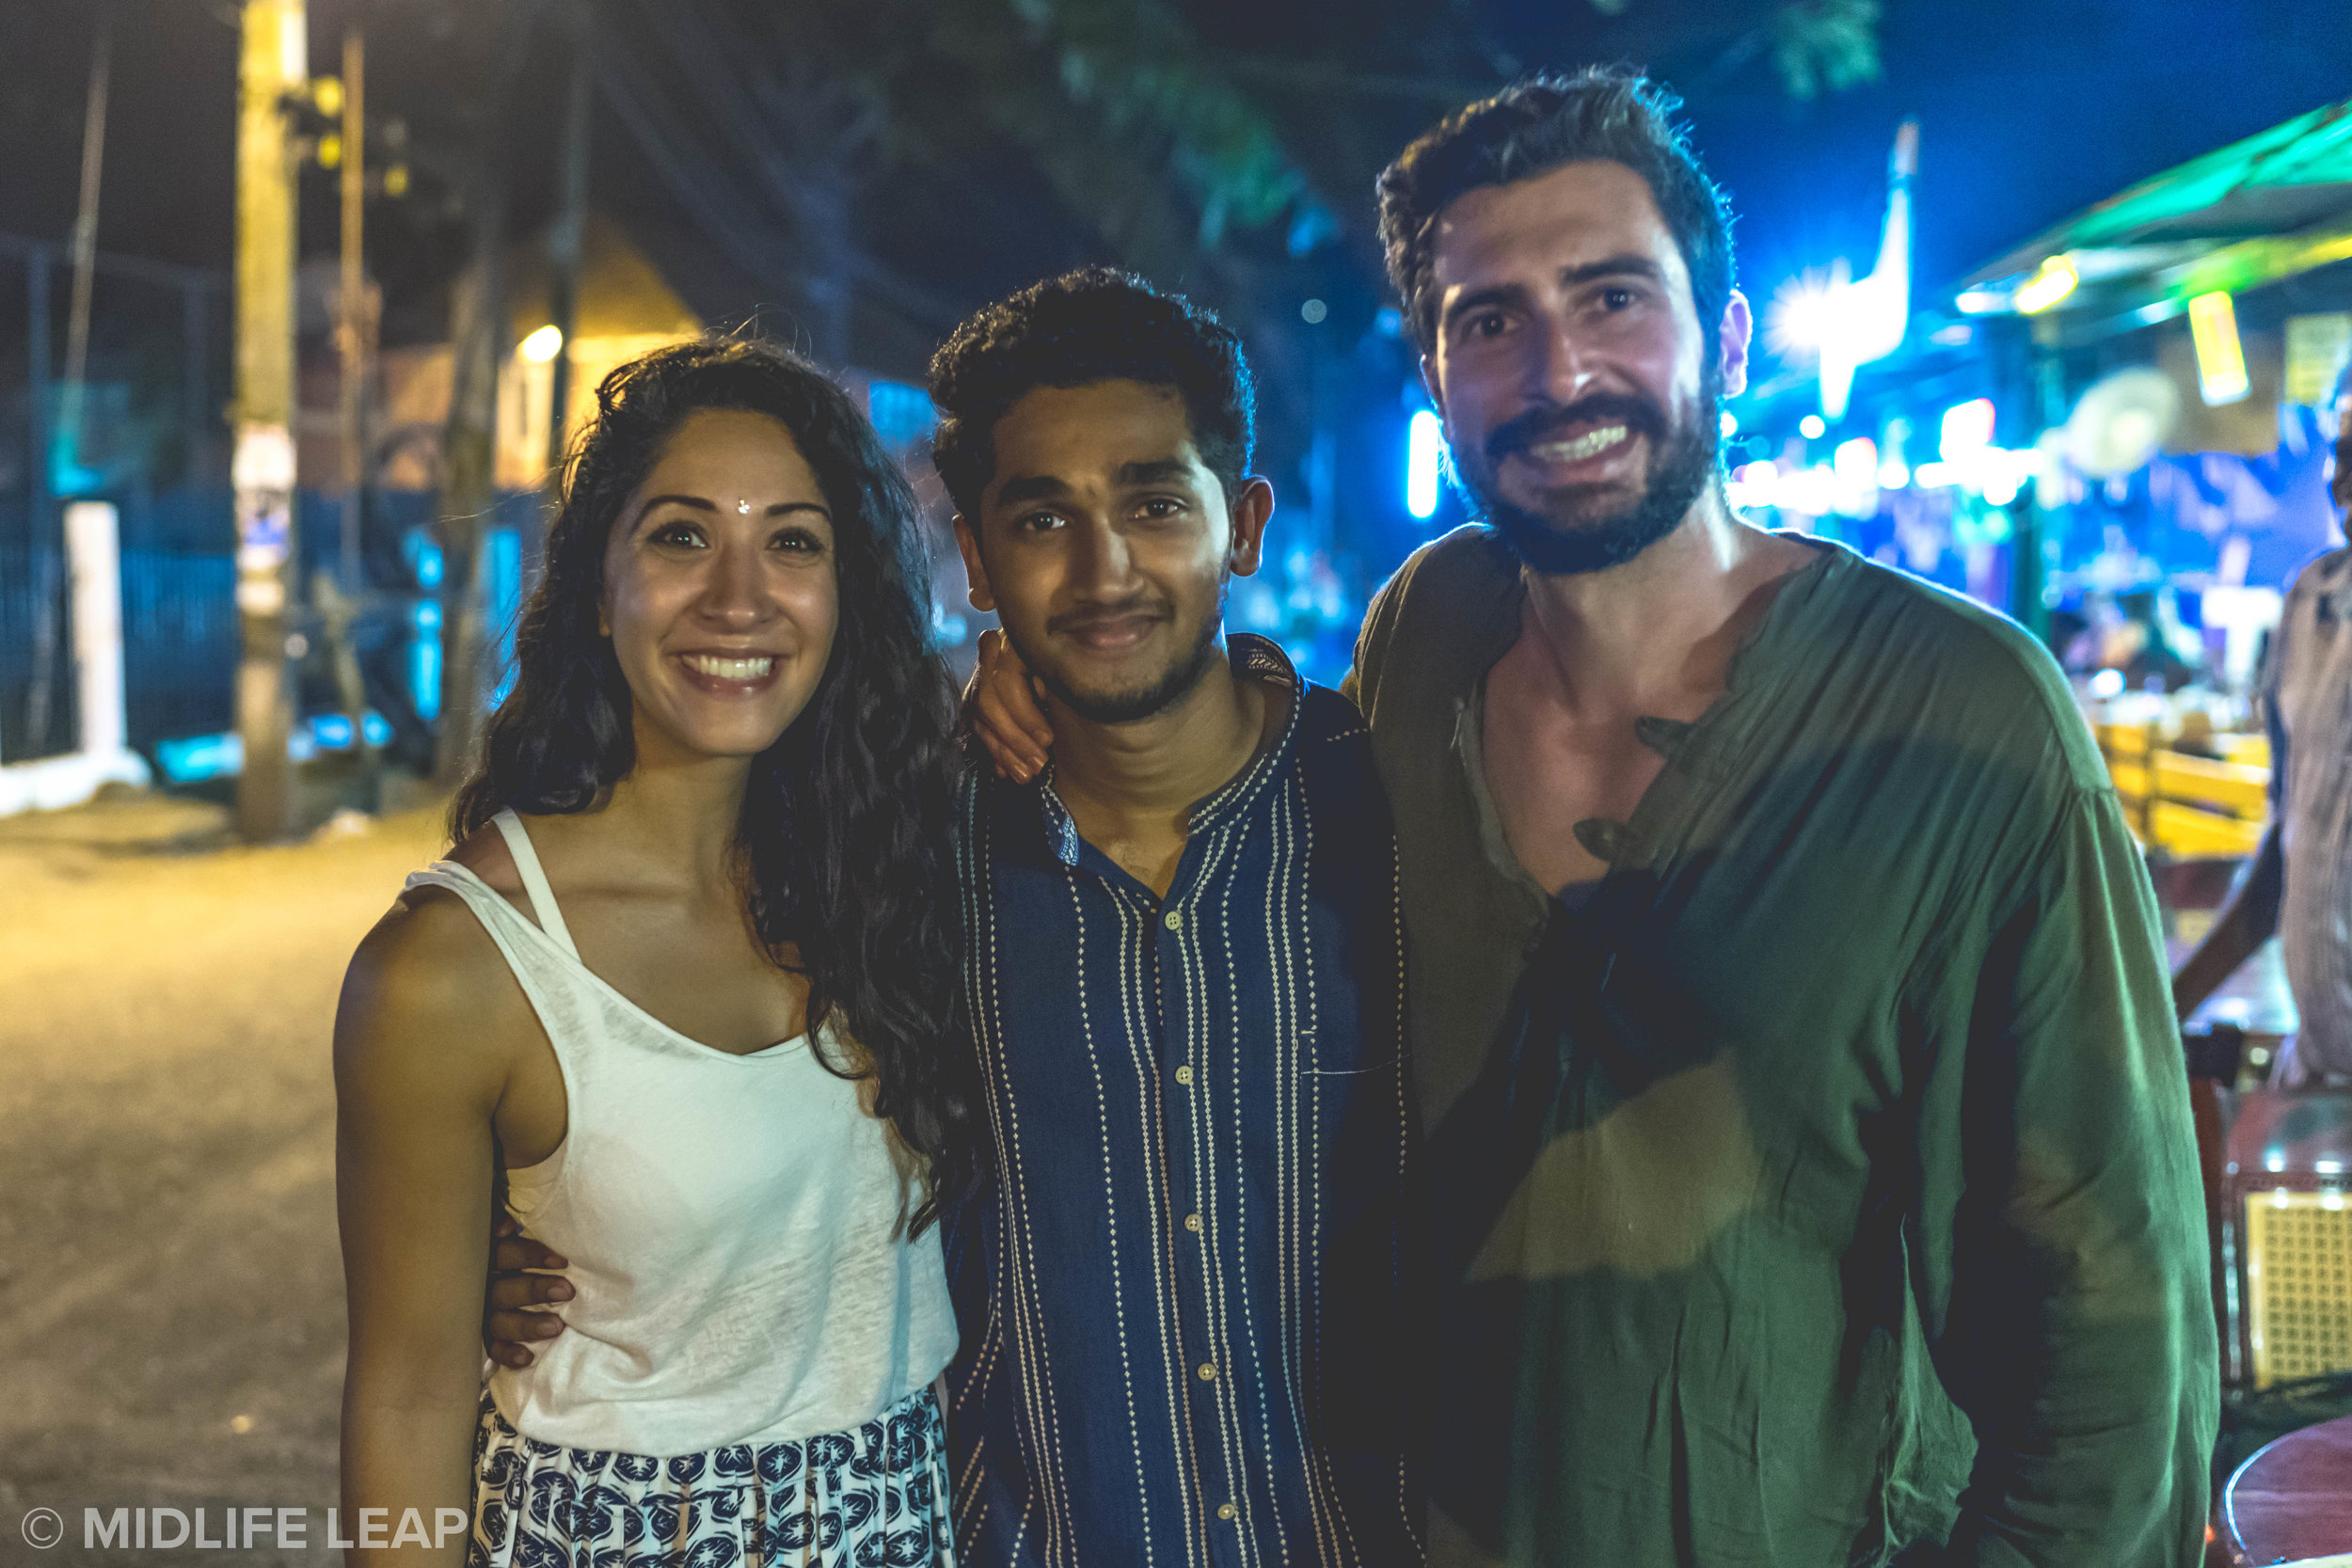 Our buddy Nick who showed us an awesome night in Kochi 💙